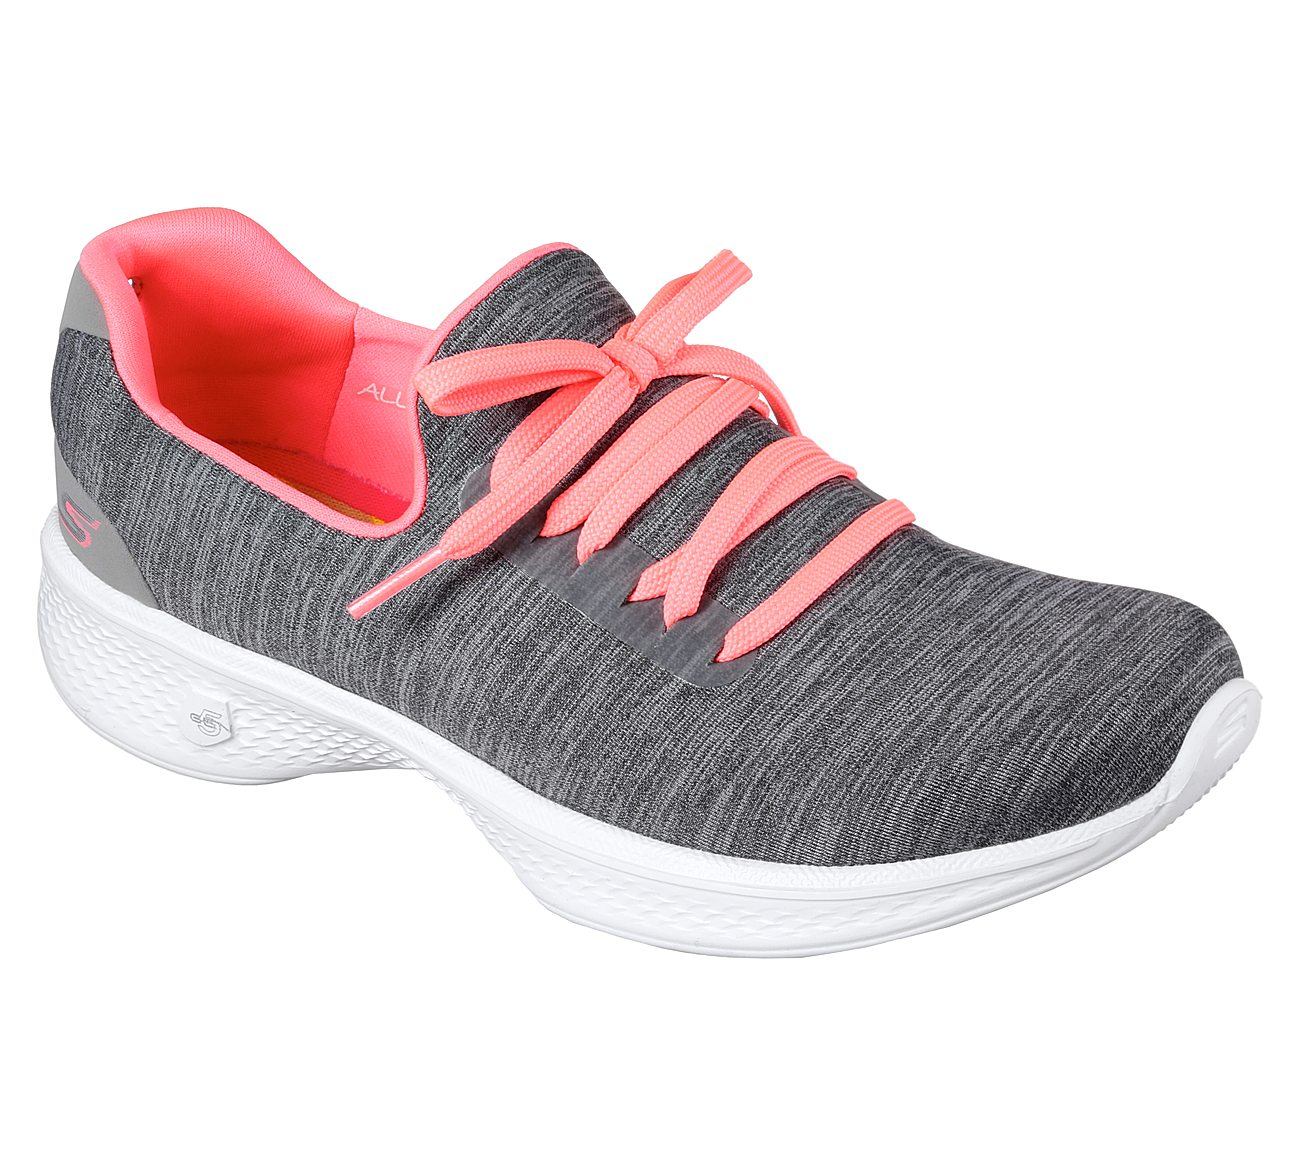 Shoes of the Day: Skechers